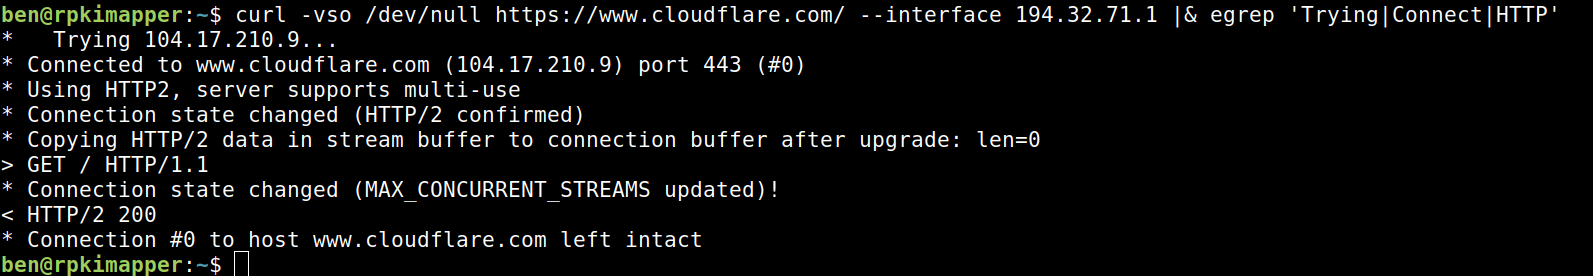 Cloudflare can still reach 194.32.71.0/24